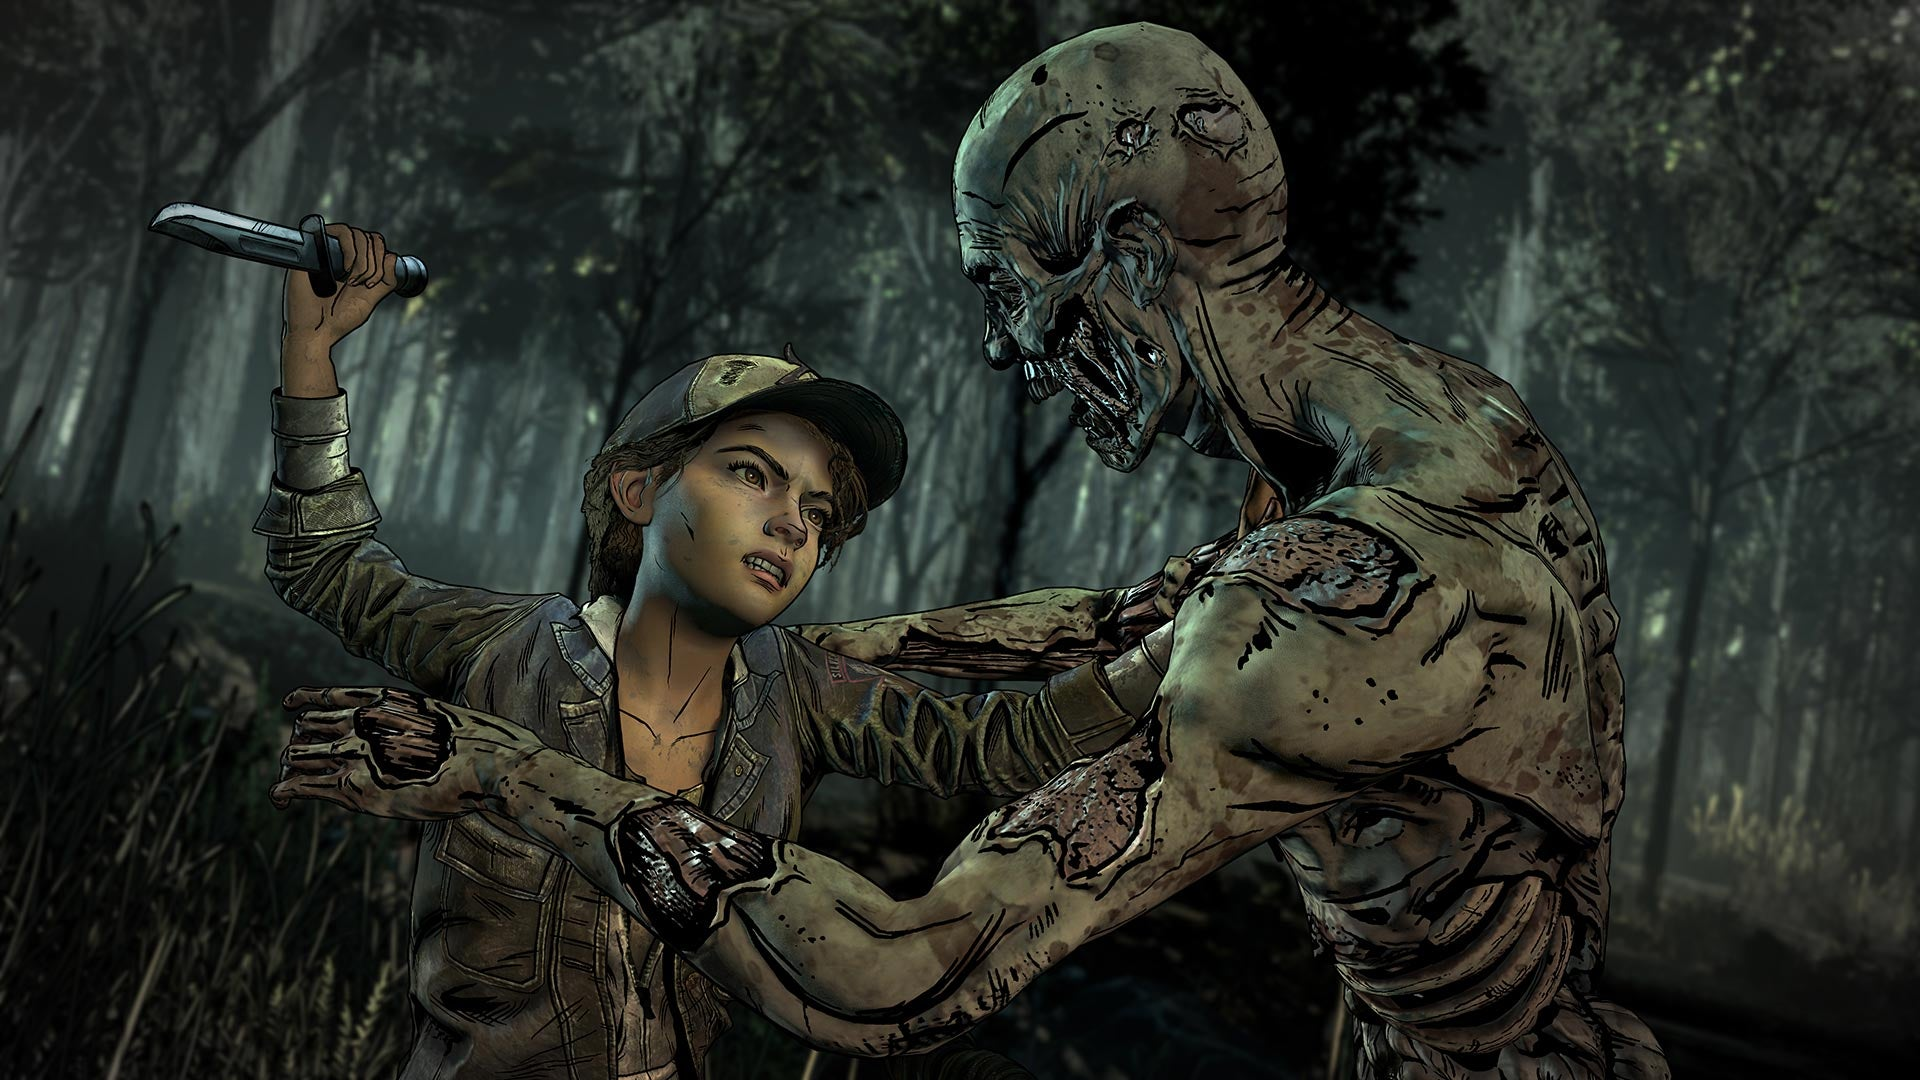 Two People Who Didn't Work At Telltale Games Say They're Bringing Back Telltale Games